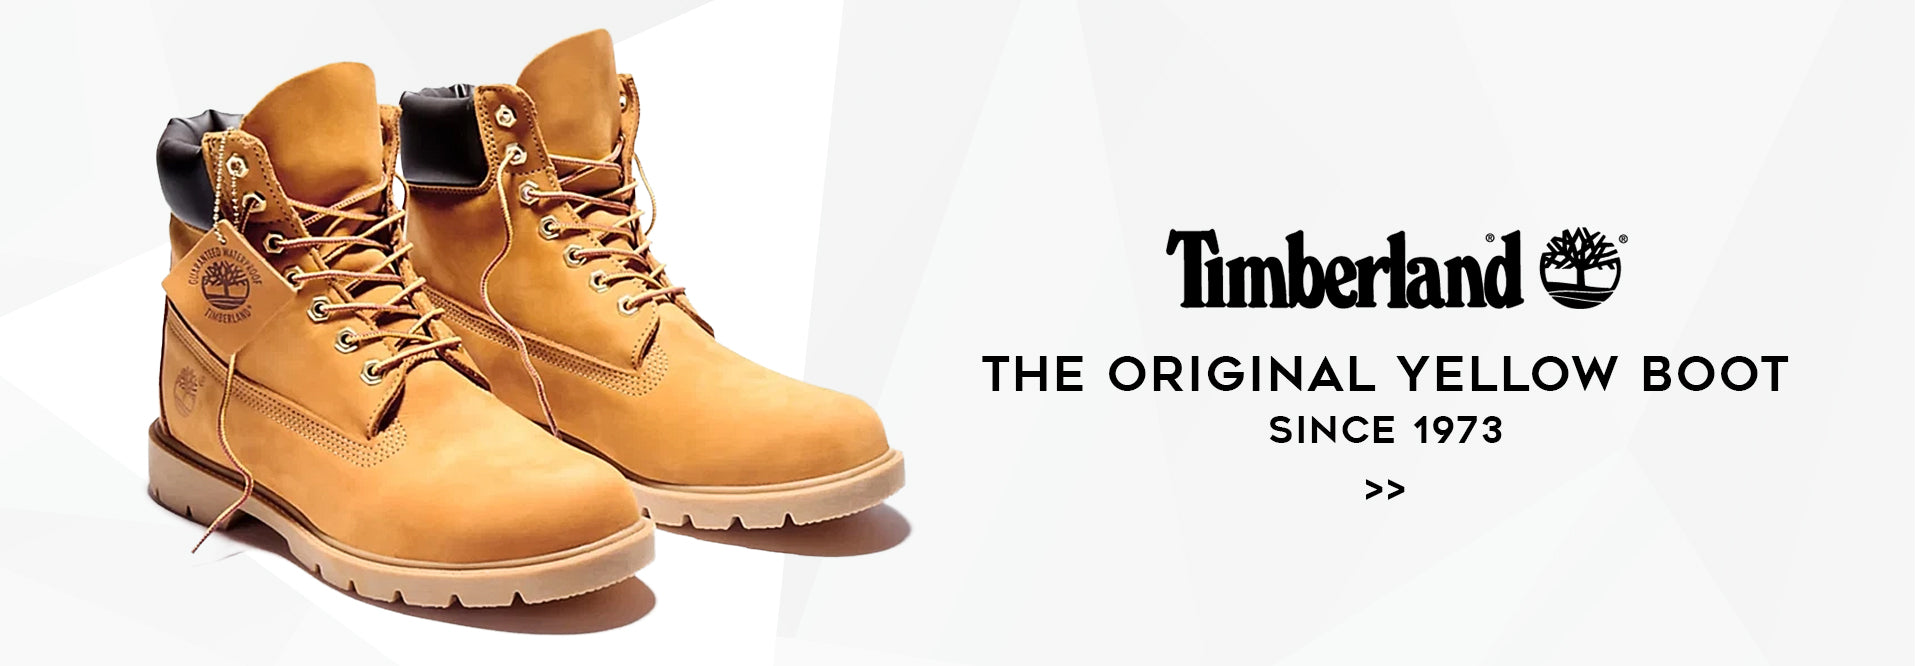 SVP Sports - Timberland Collection Banner